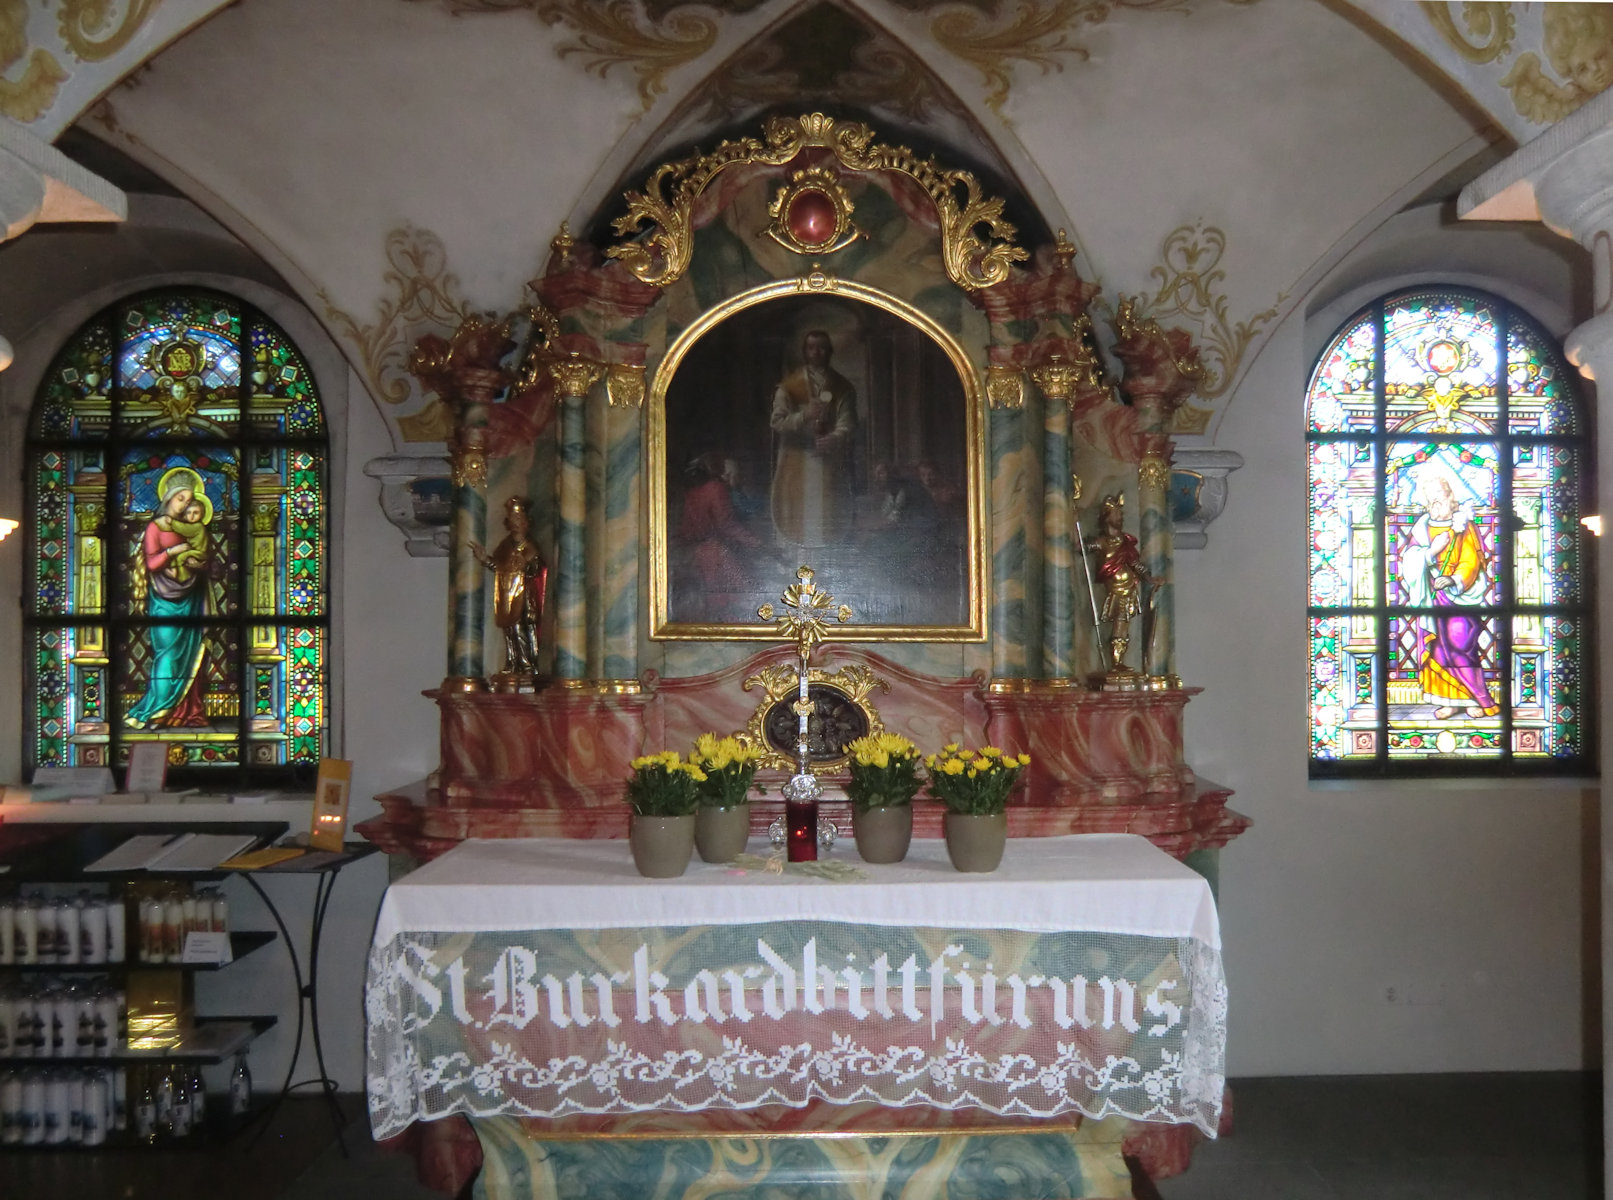 Burkhards Grab, 1752, in der Kryta der Kirche in Beinwil